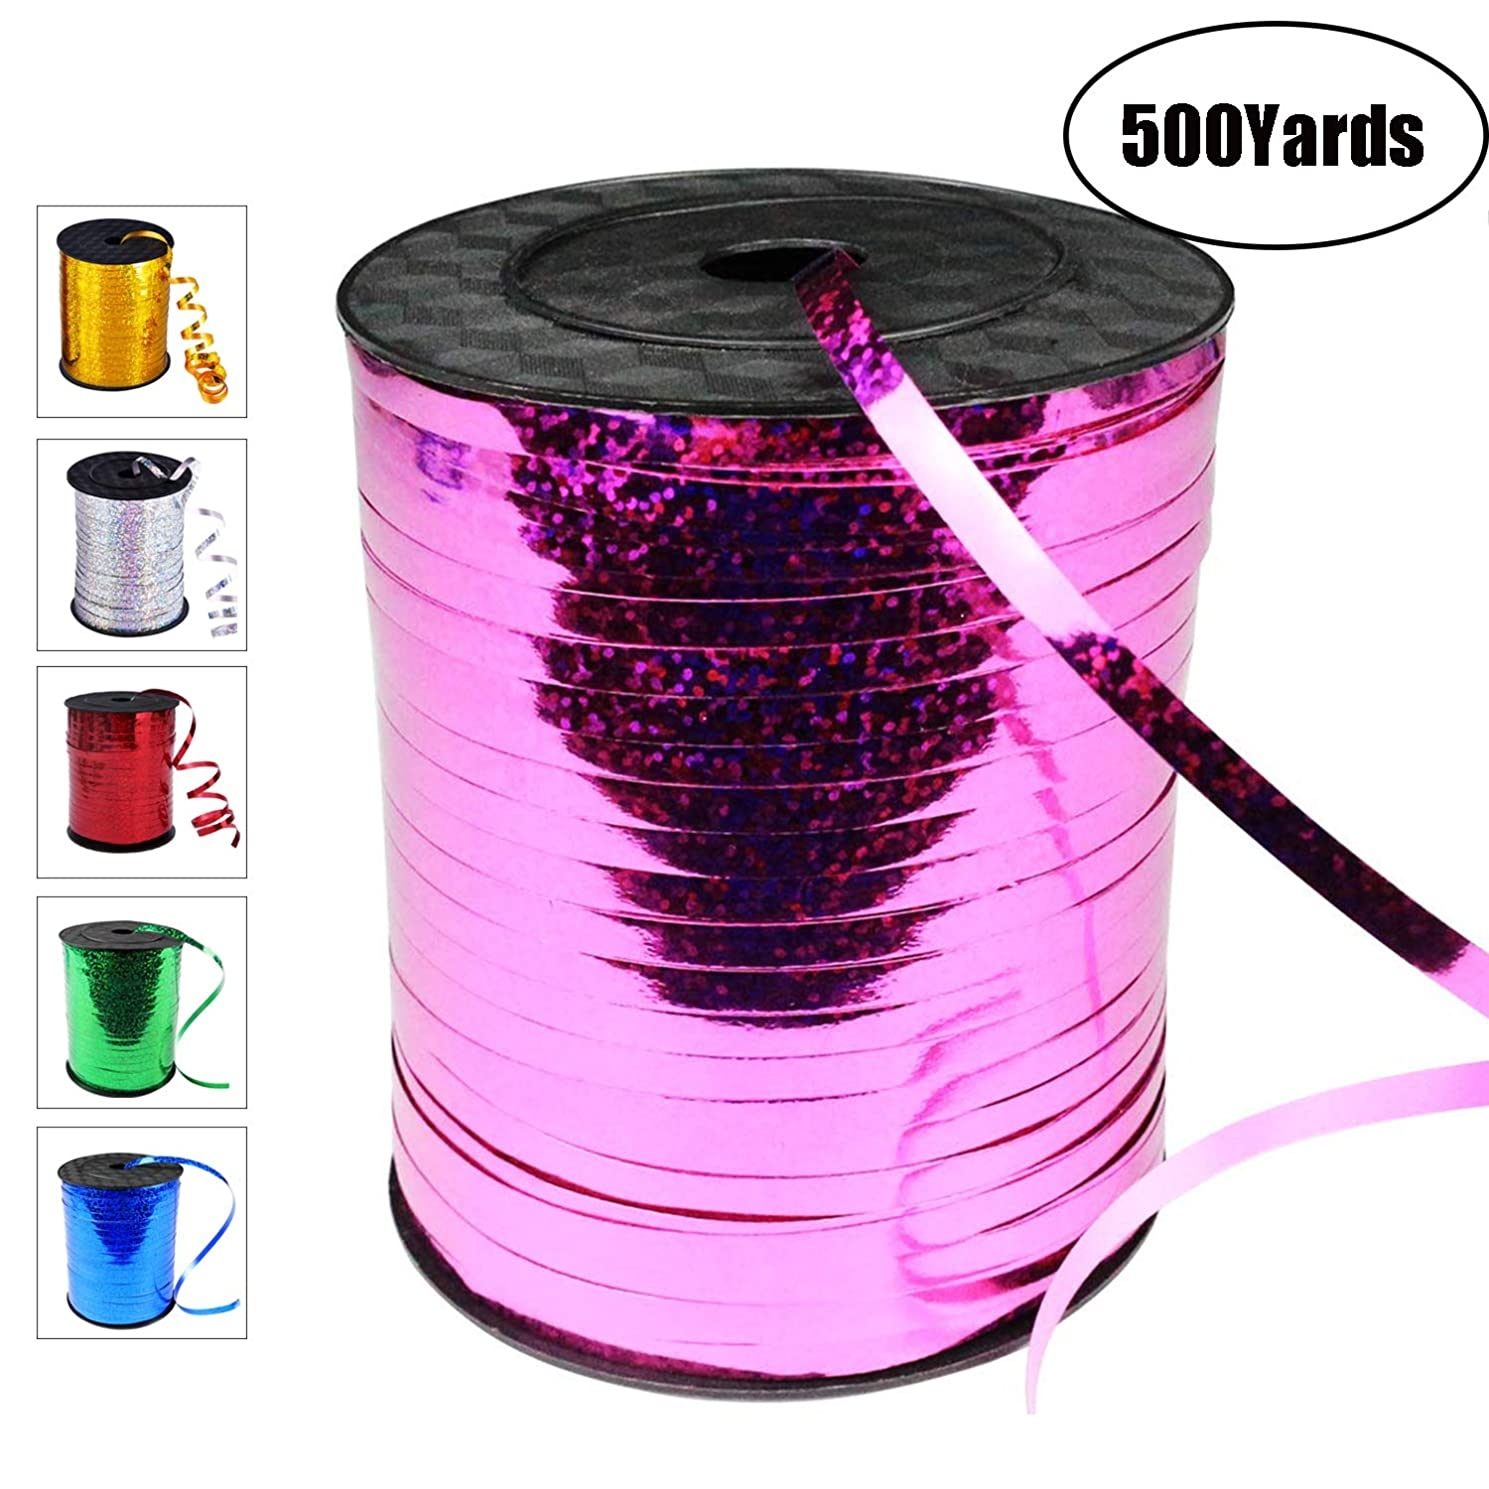 500 Yards Curling Ribbon-Balloon Ribbon-Balloon String for Art&Craft Decor,Gift Wrapping,Ribbons and Bows for Birthday Gifts (Purple)